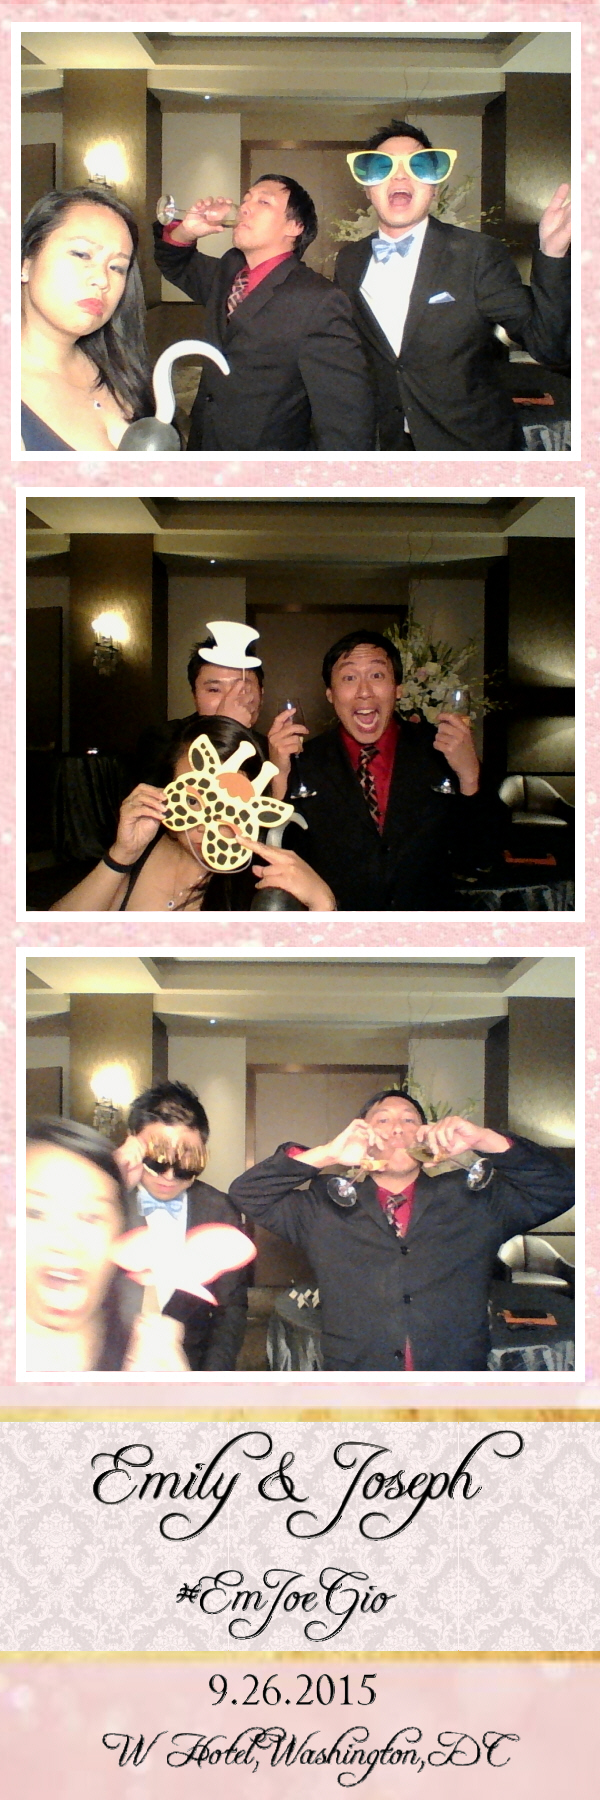 Guest House Events Photo Booth E&J (3).jpg